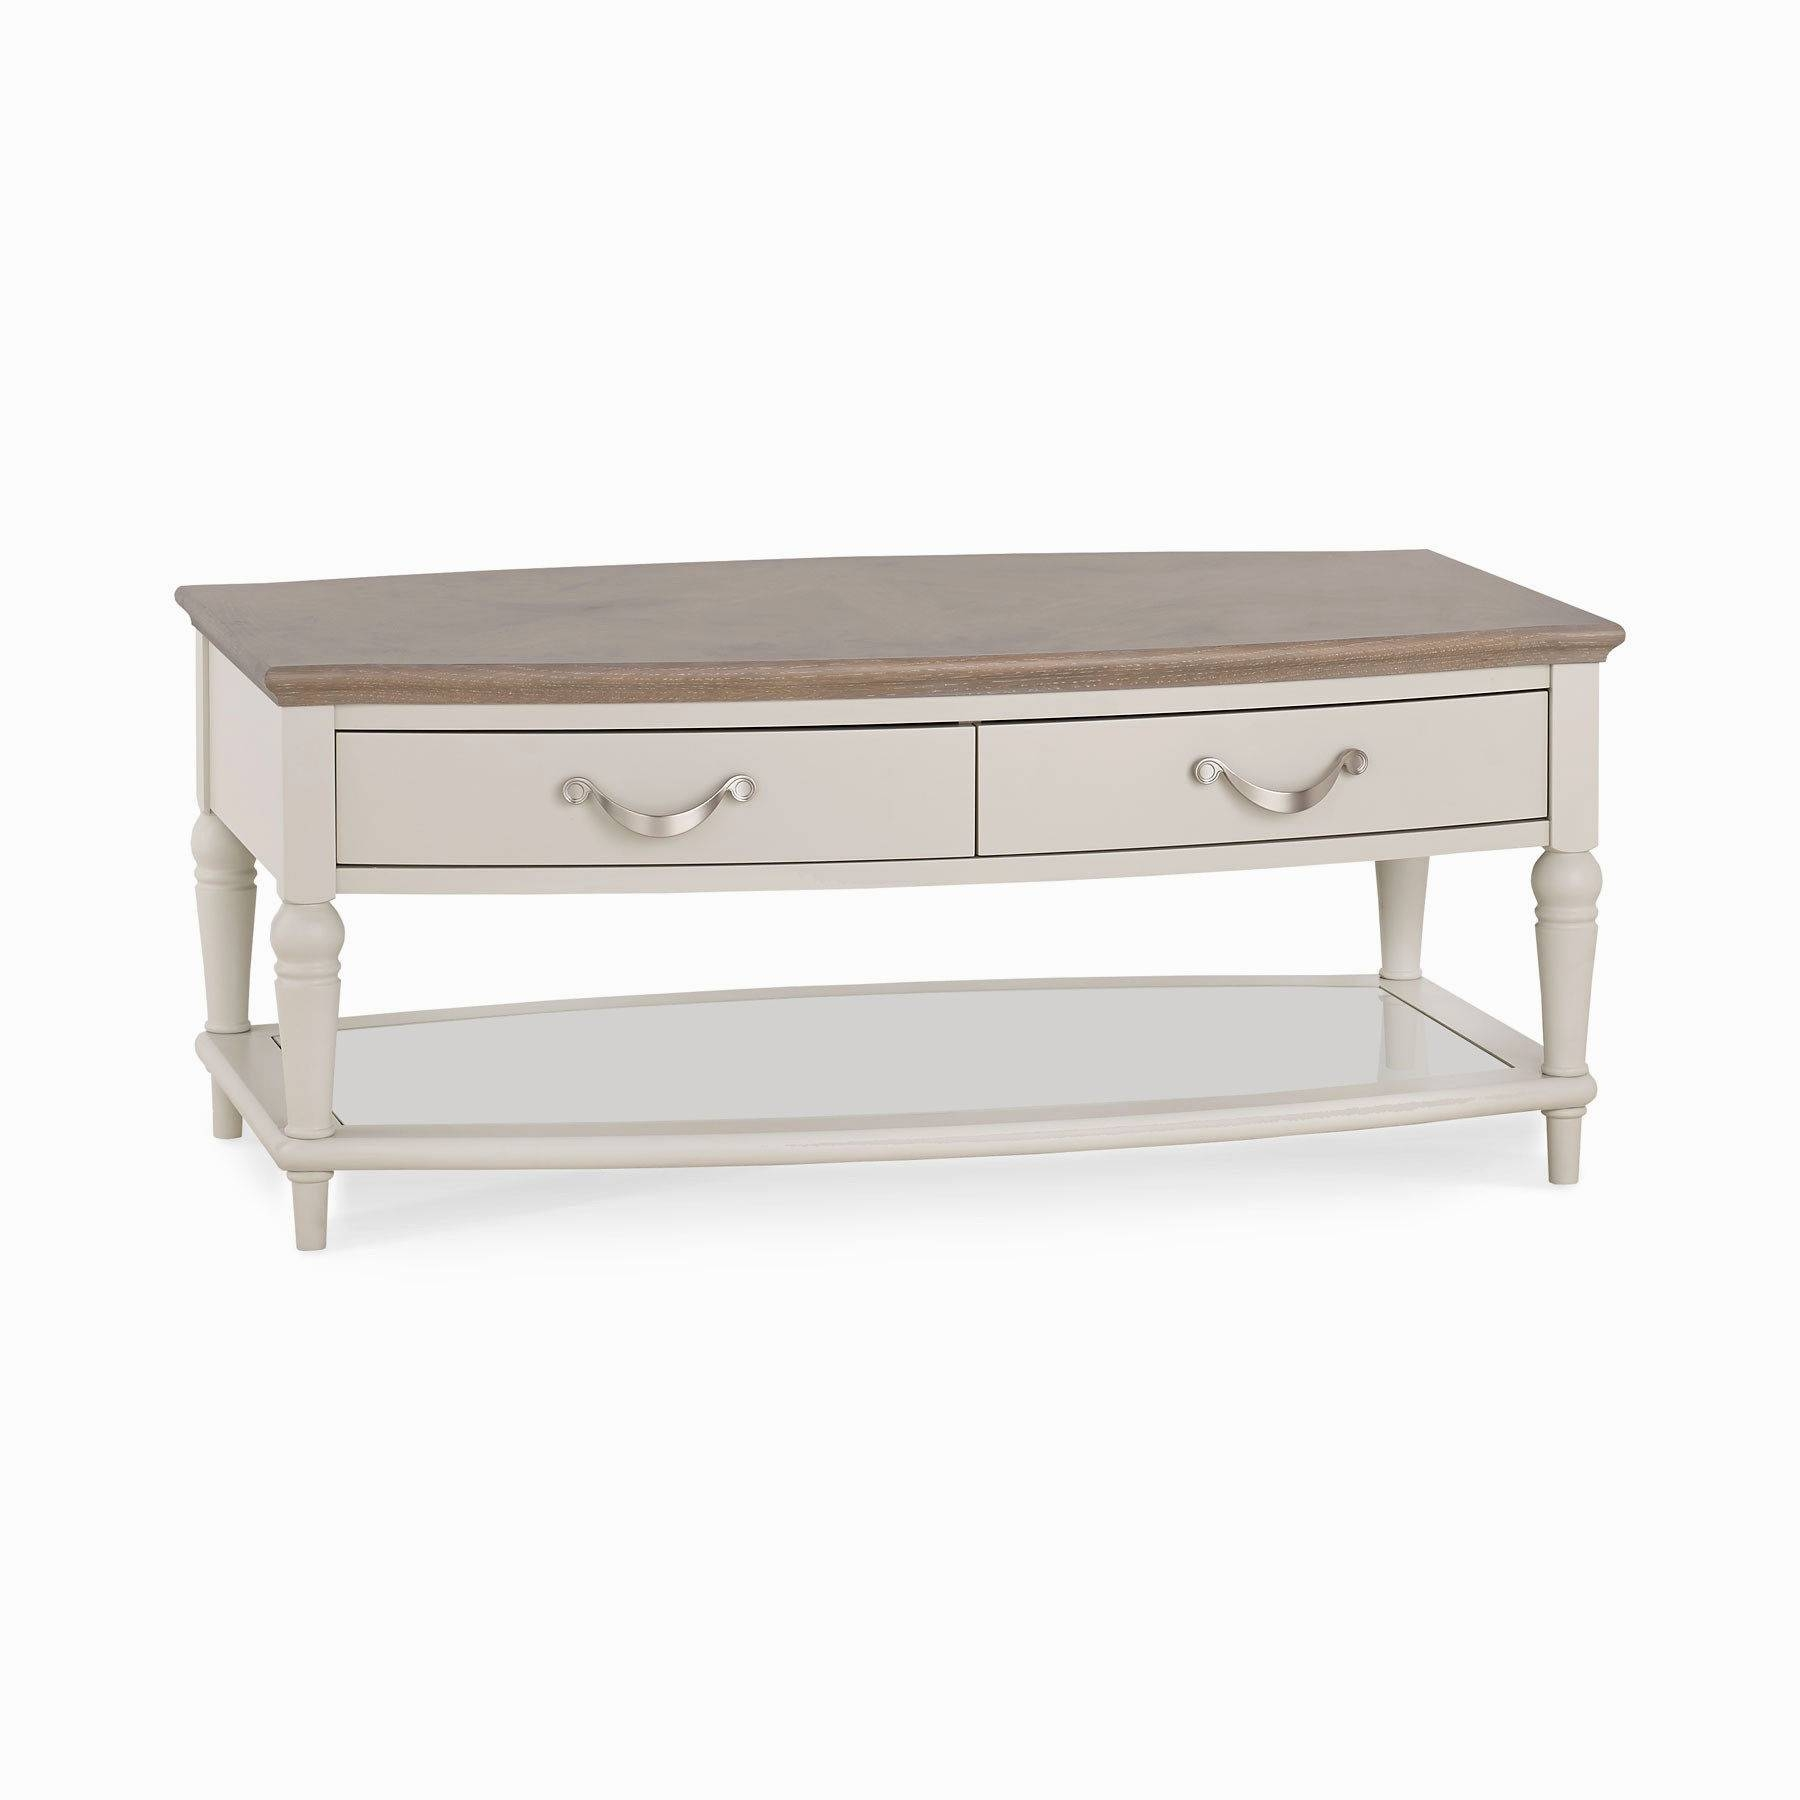 28+ [ Gray Wash Coffee Table ] | Grey Wash Coffee Table Furniture in Gray Wash Coffee Tables (Image 2 of 30)